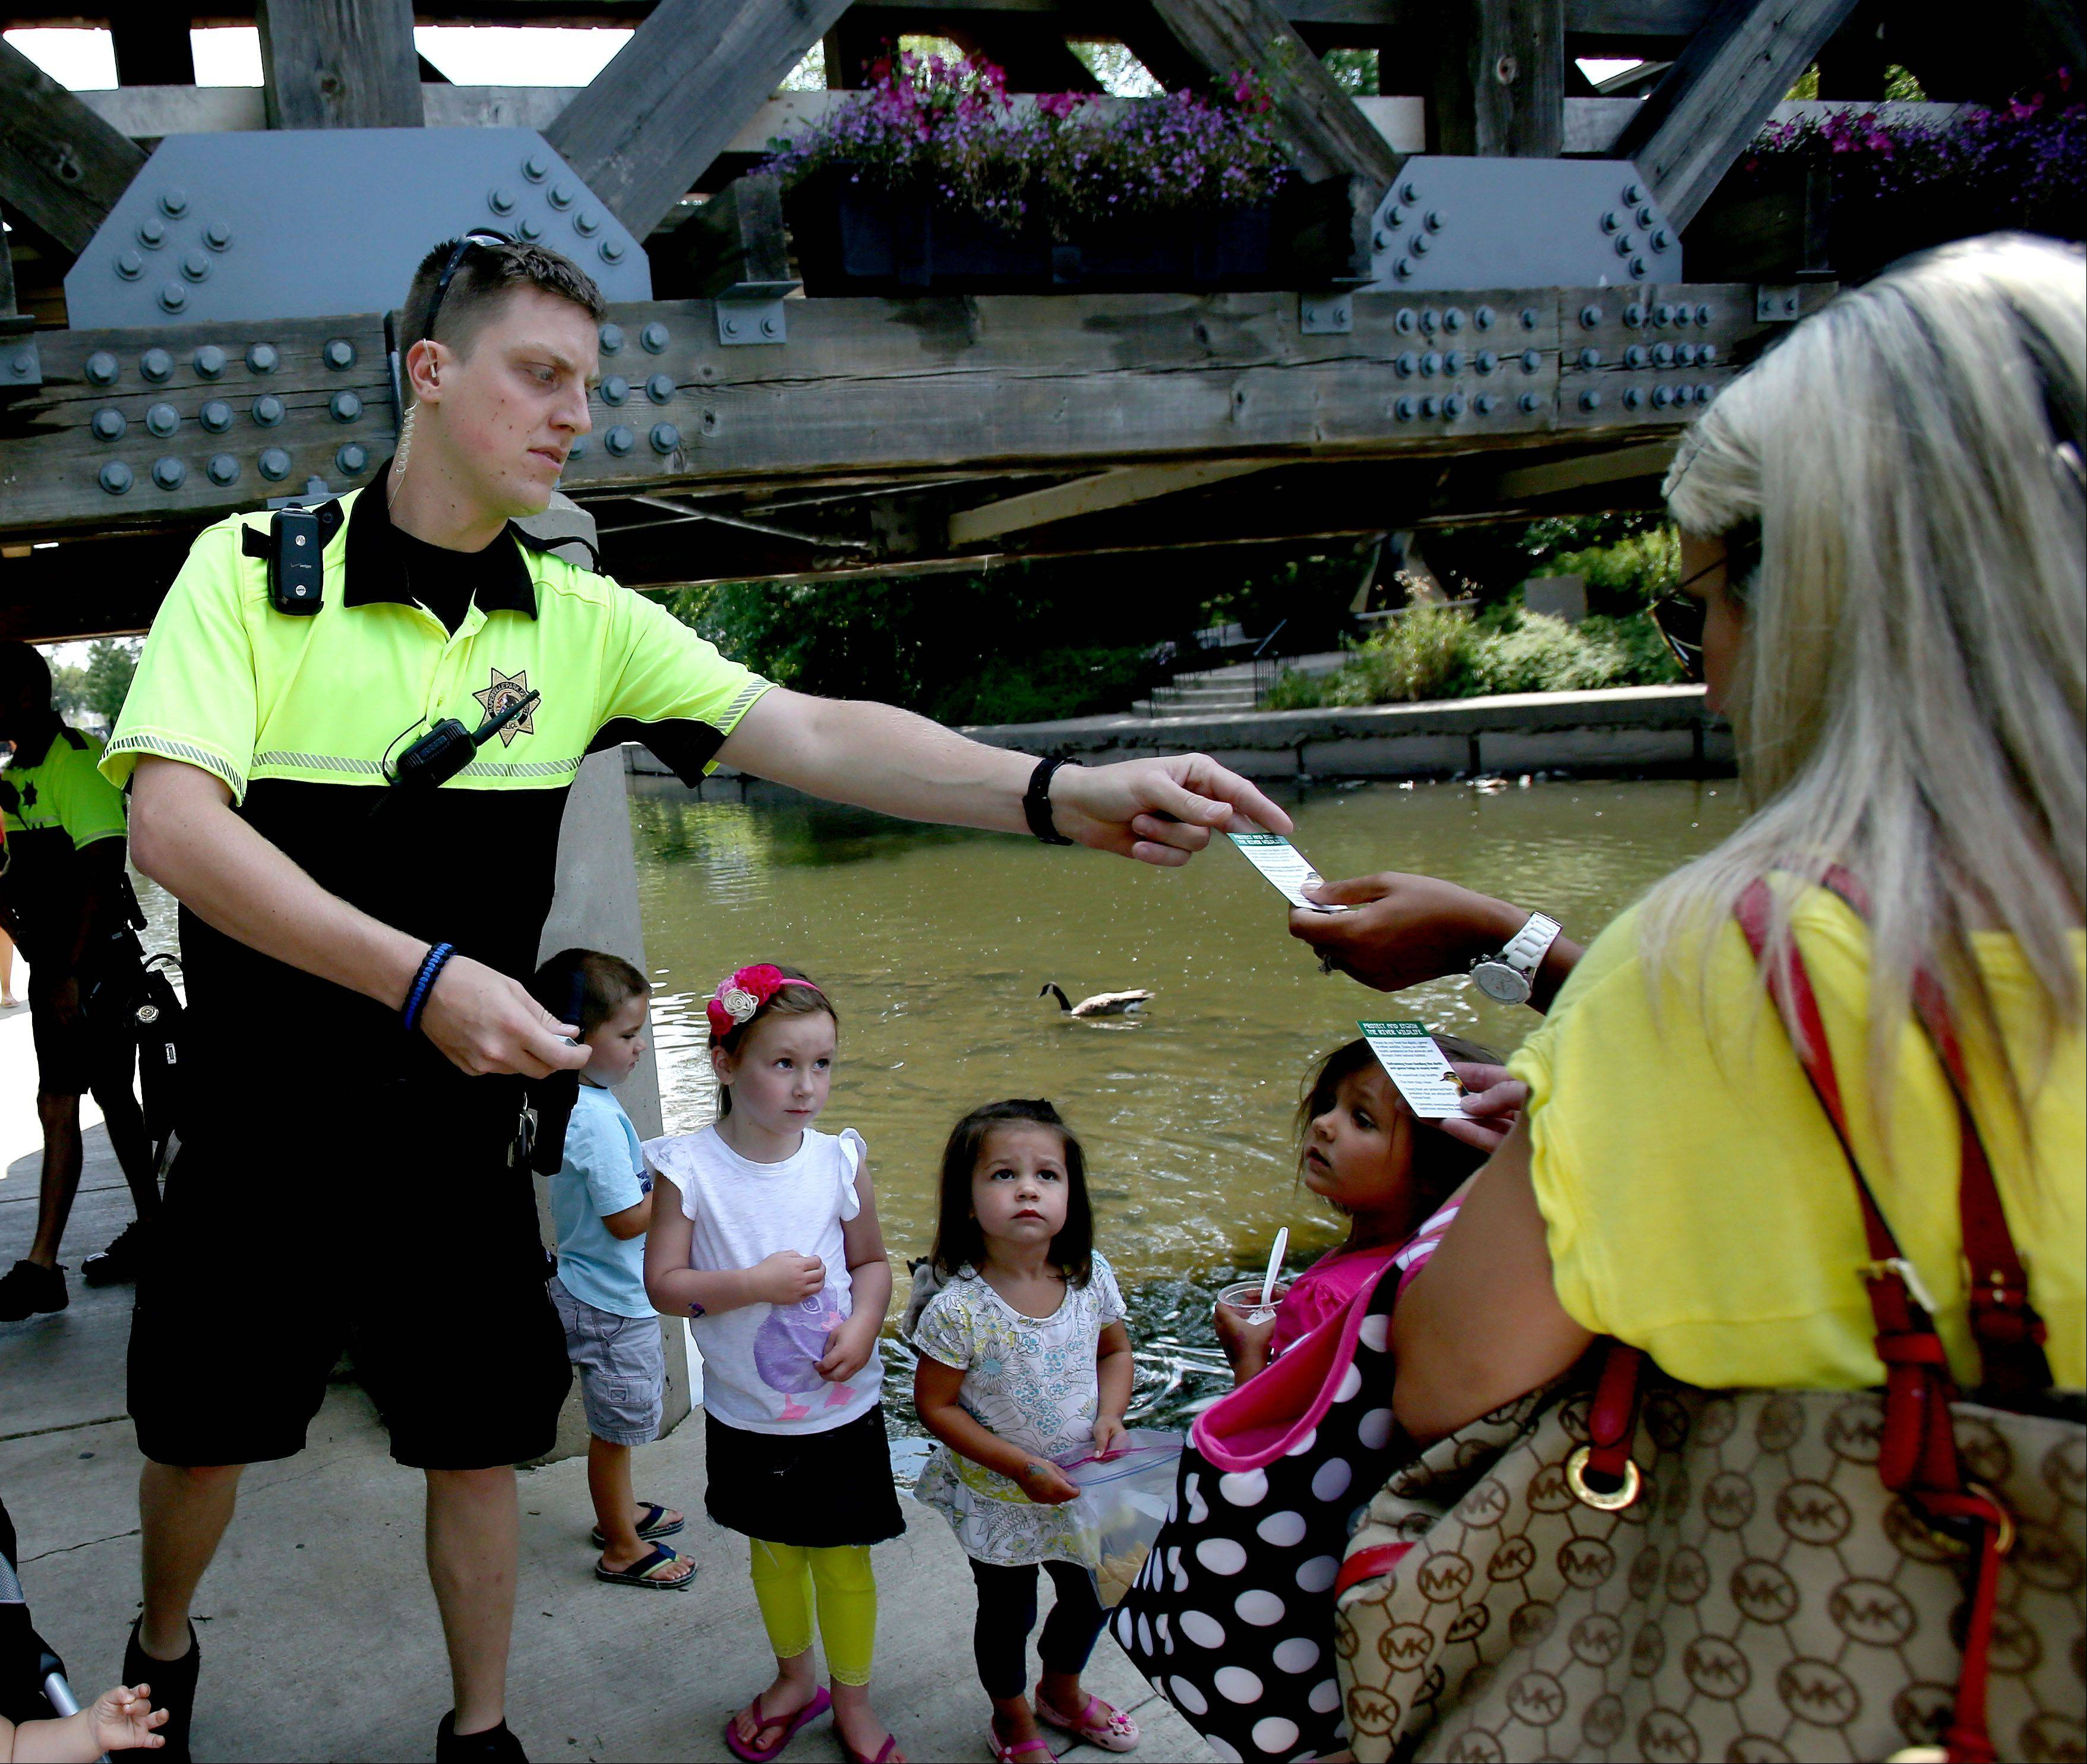 Naperville Park District police officers are handing out cards urging visitors not to feed the ducks or geese along the Riverwalk.